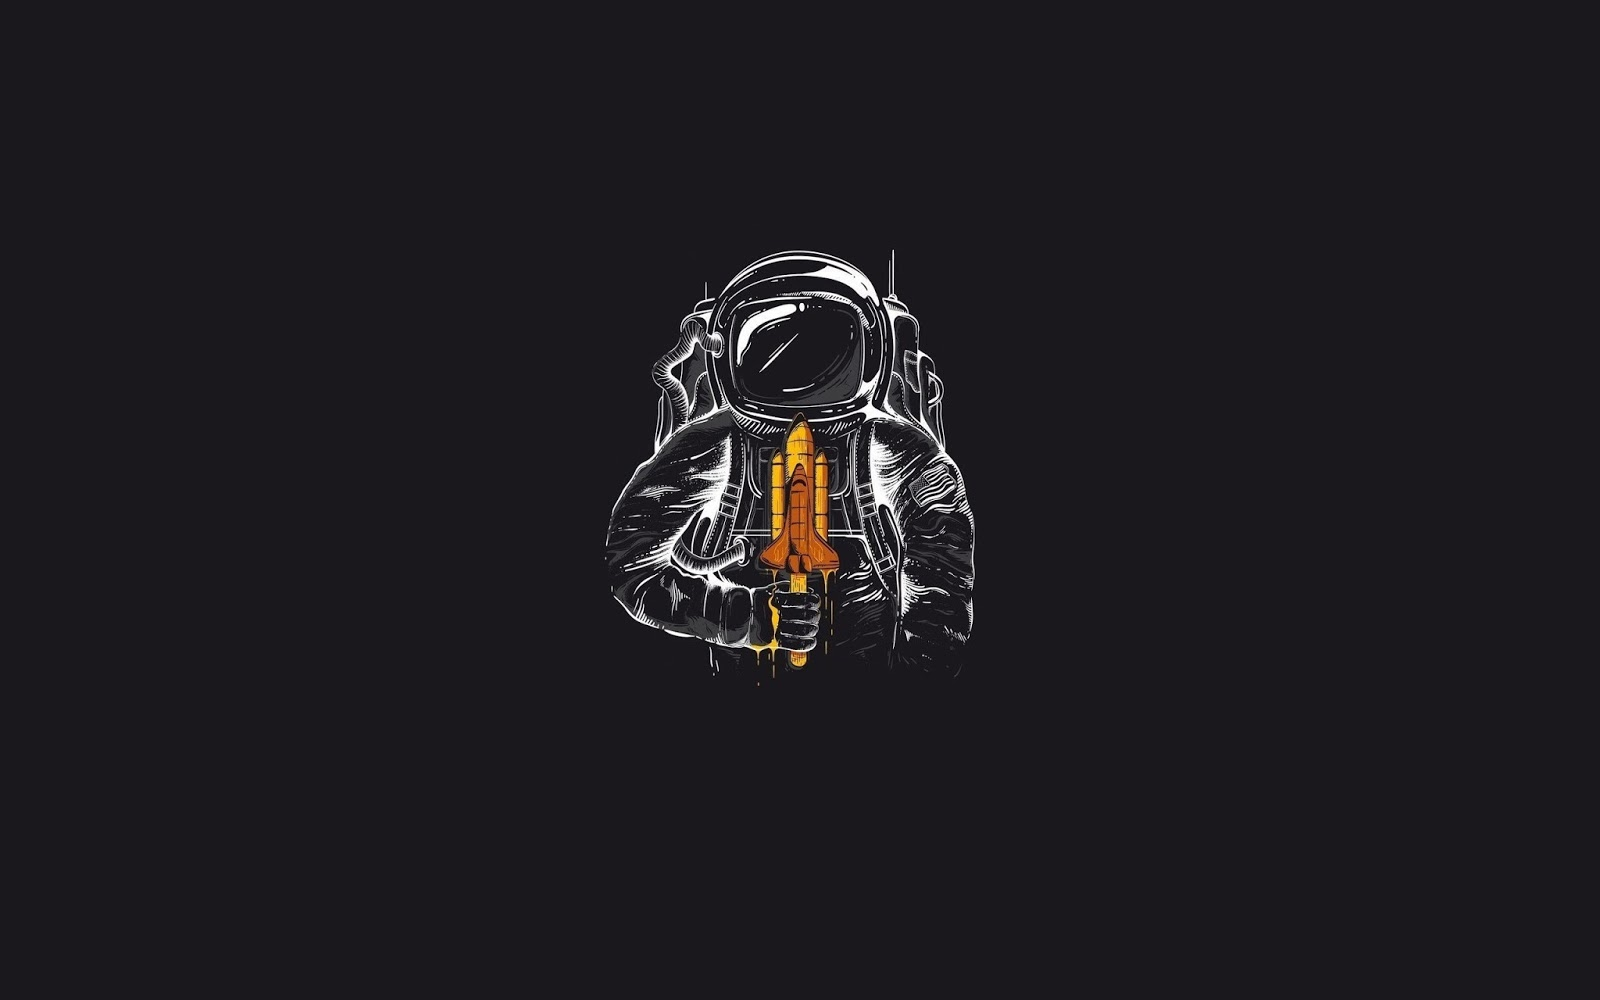 Astronauts Wallpapers